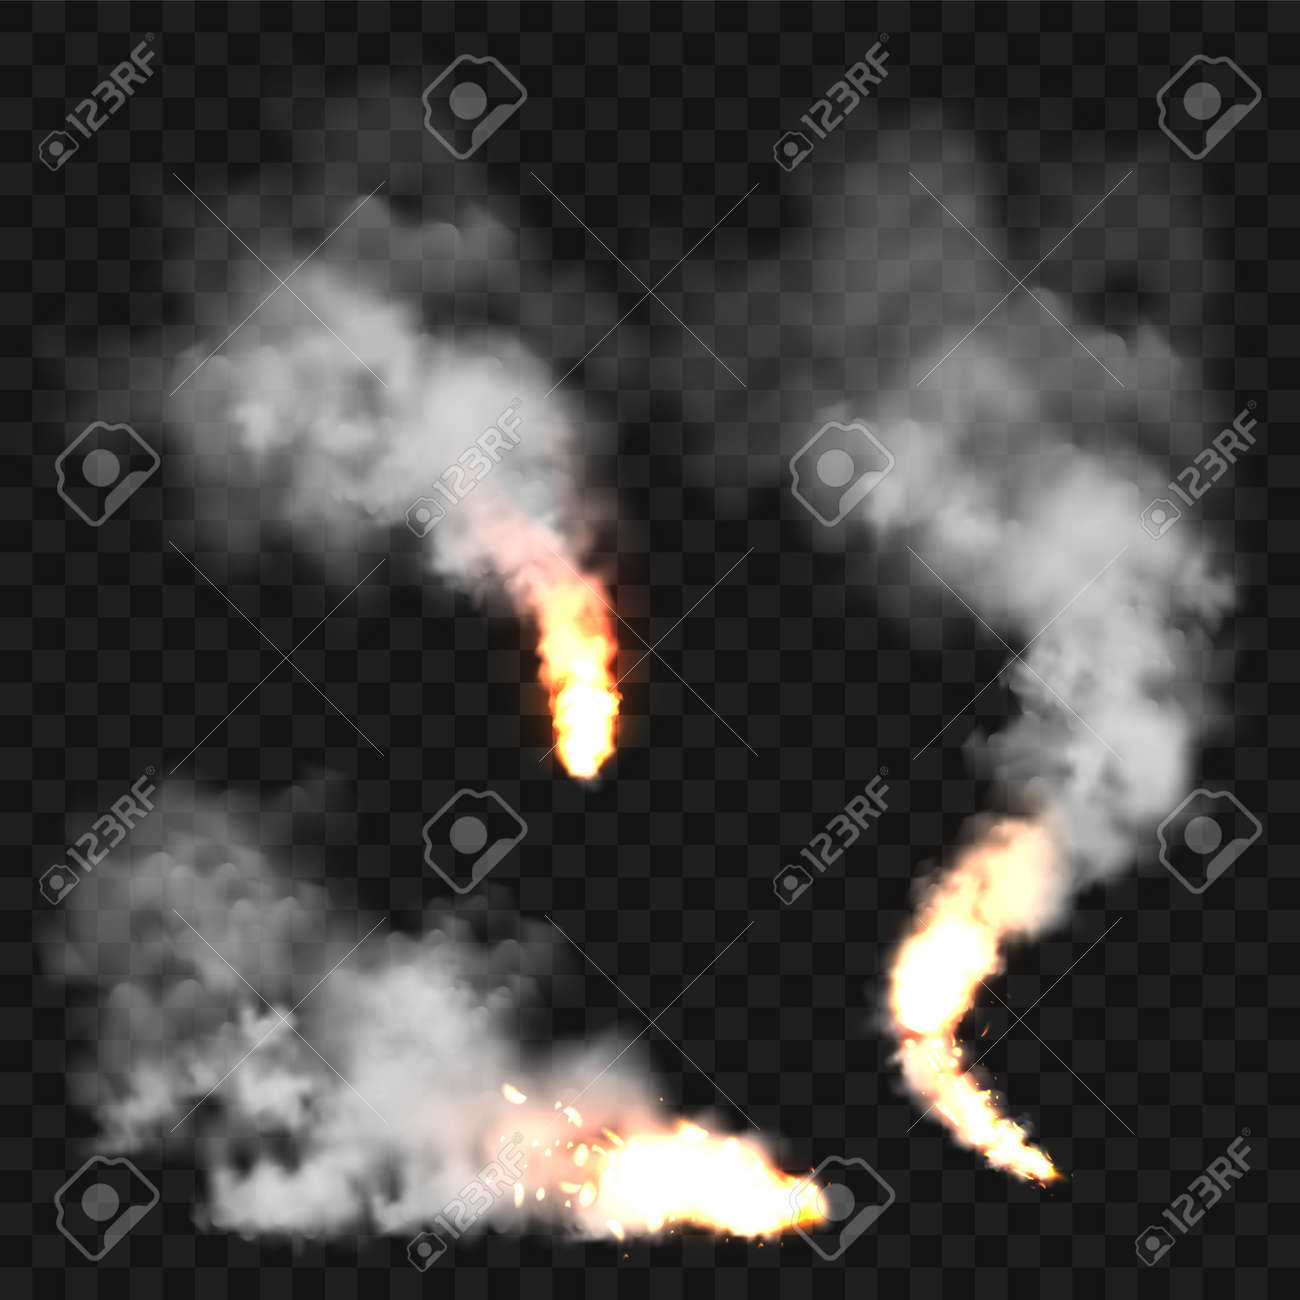 Realistic smoke clouds and fire. Flame blast, explosion. Stream of smoke from burning objects. Forest fires. Transparent fog effect. White steam, mist. Vector design element. - 169642703